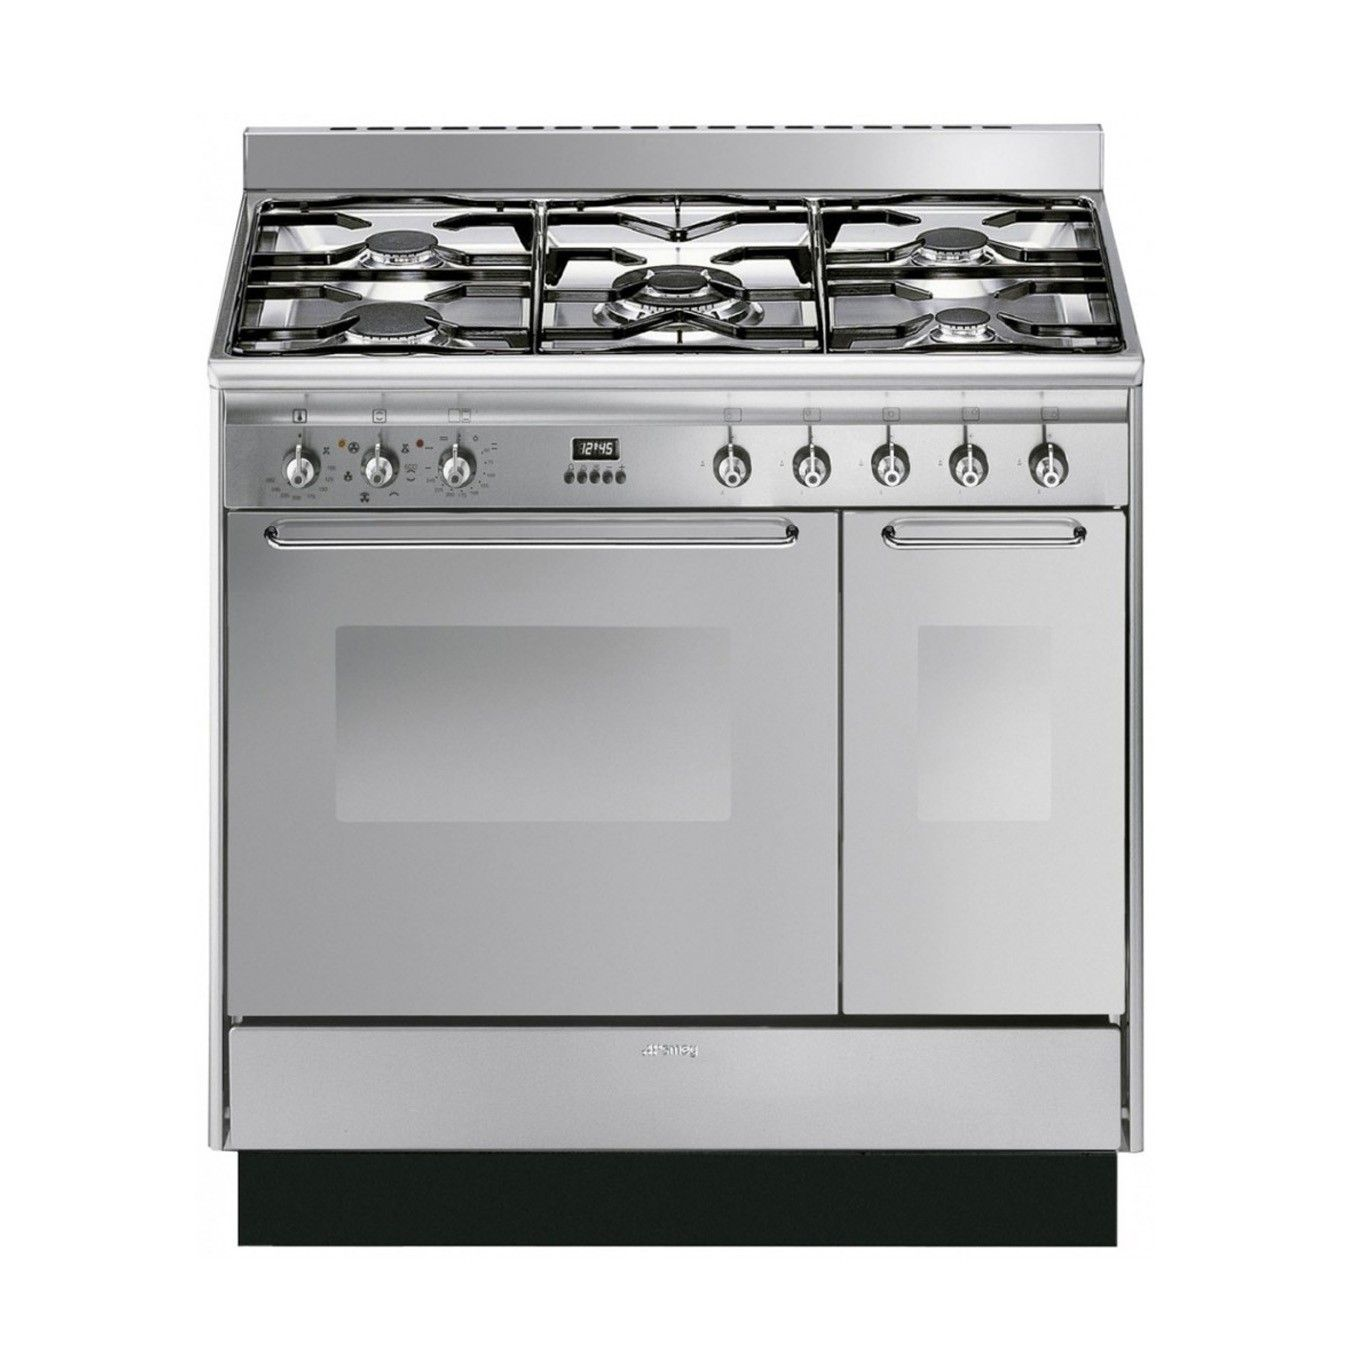 Cucina 90 Stainless Steel Dual Fuel Range Cooker